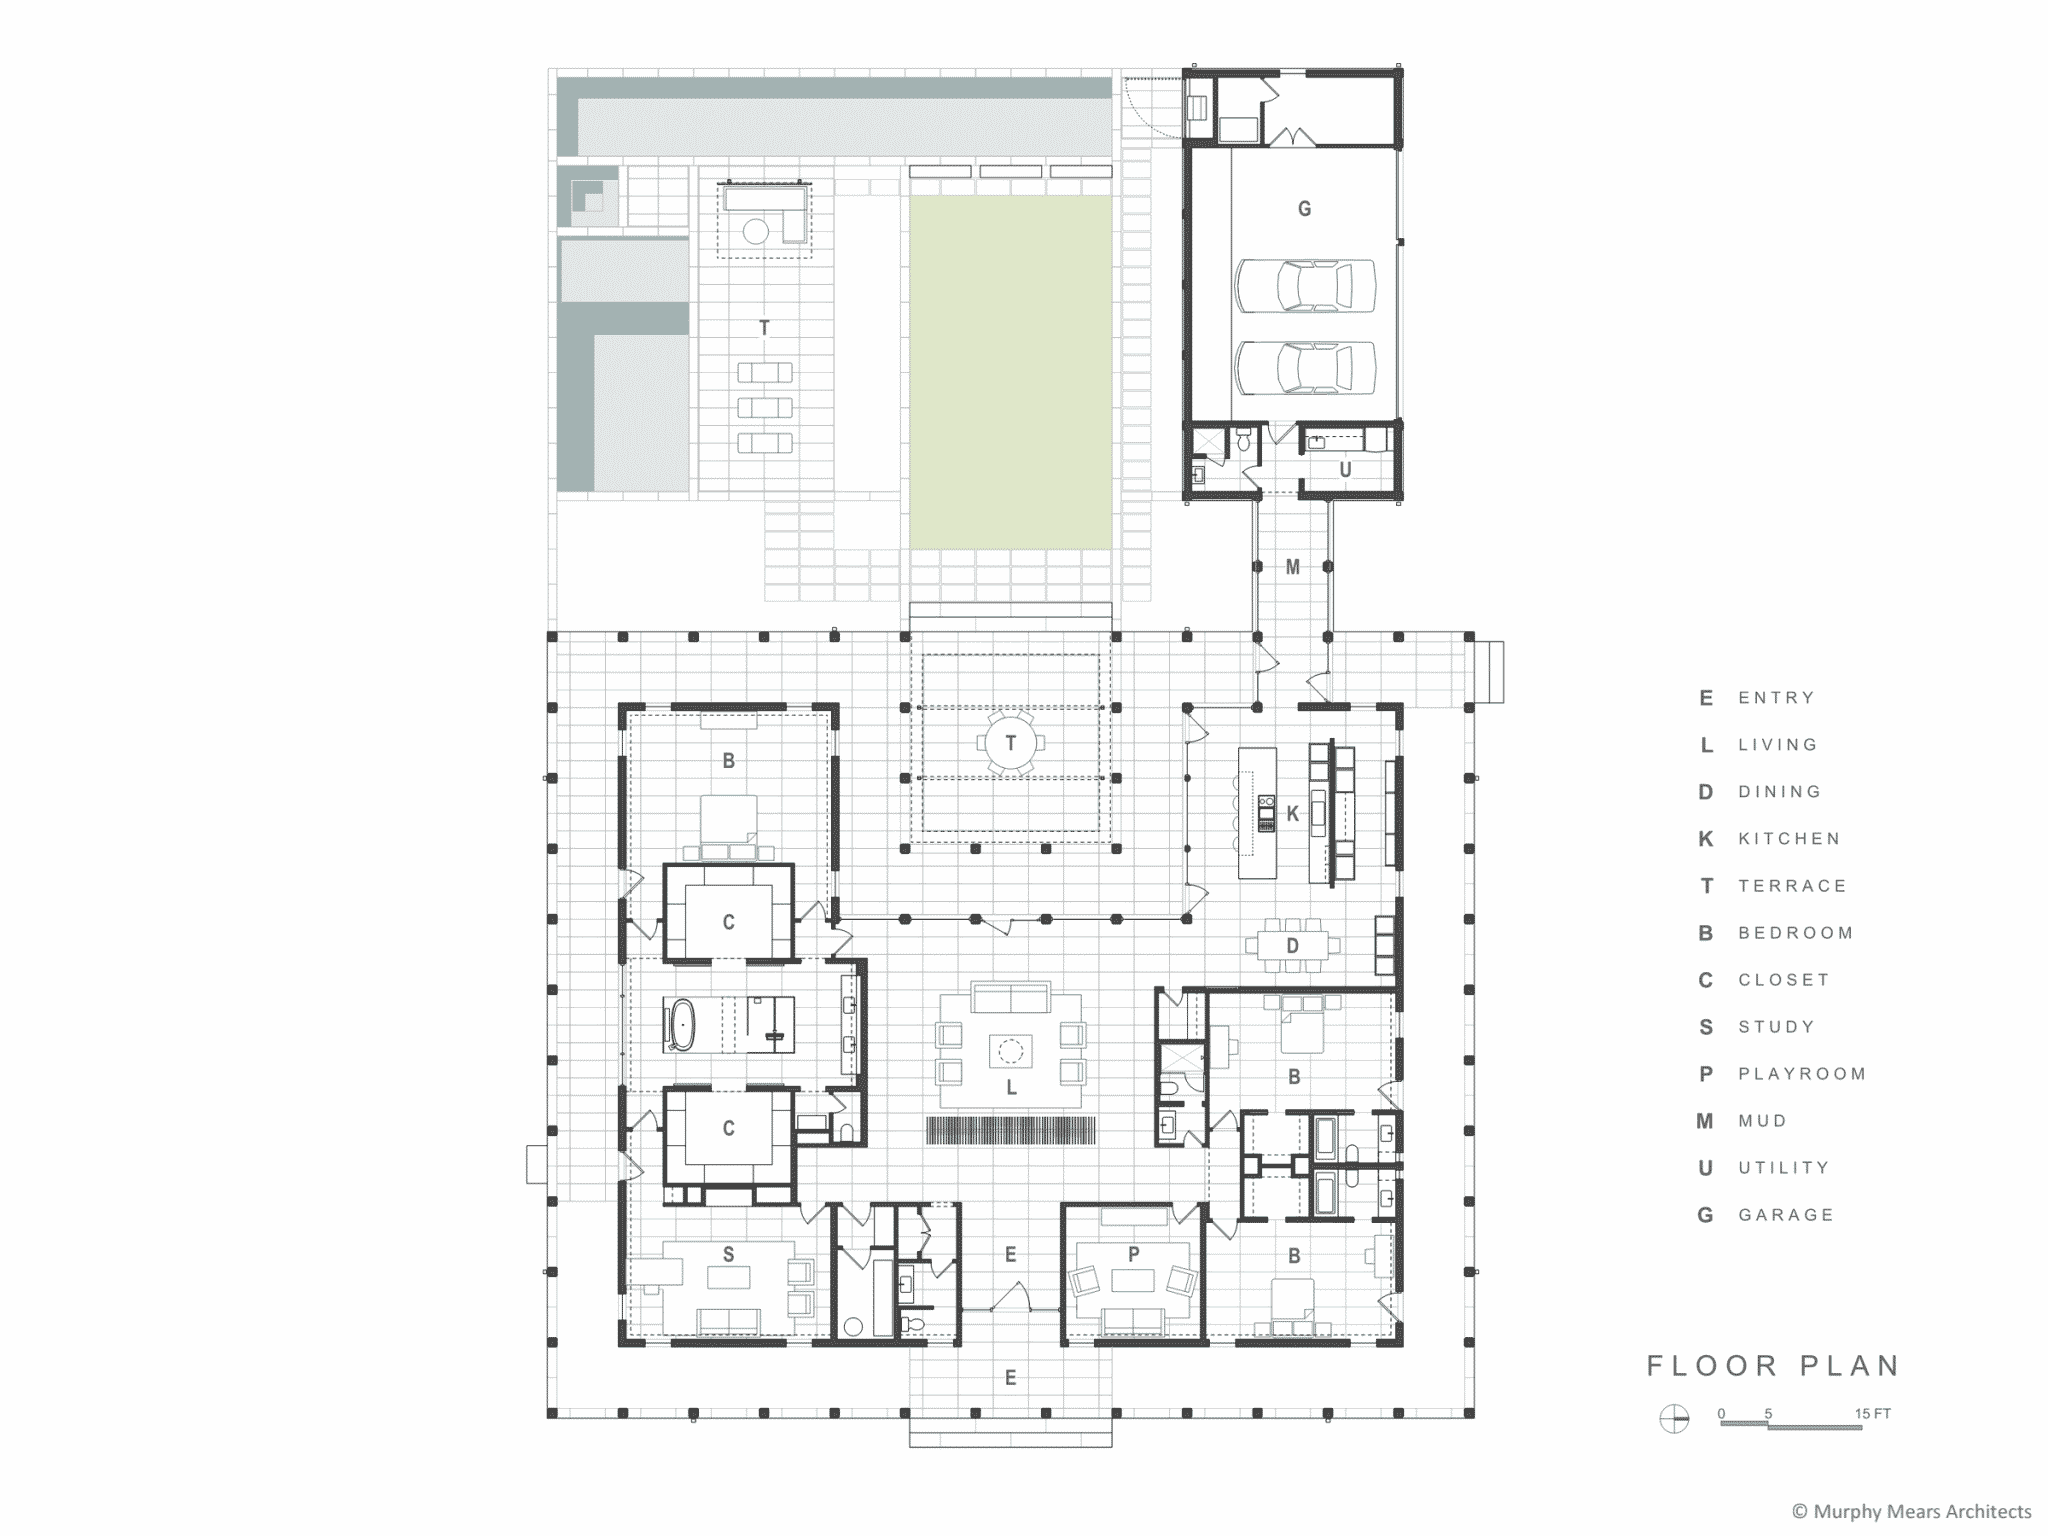 Reconfigured floor plan and back yard.